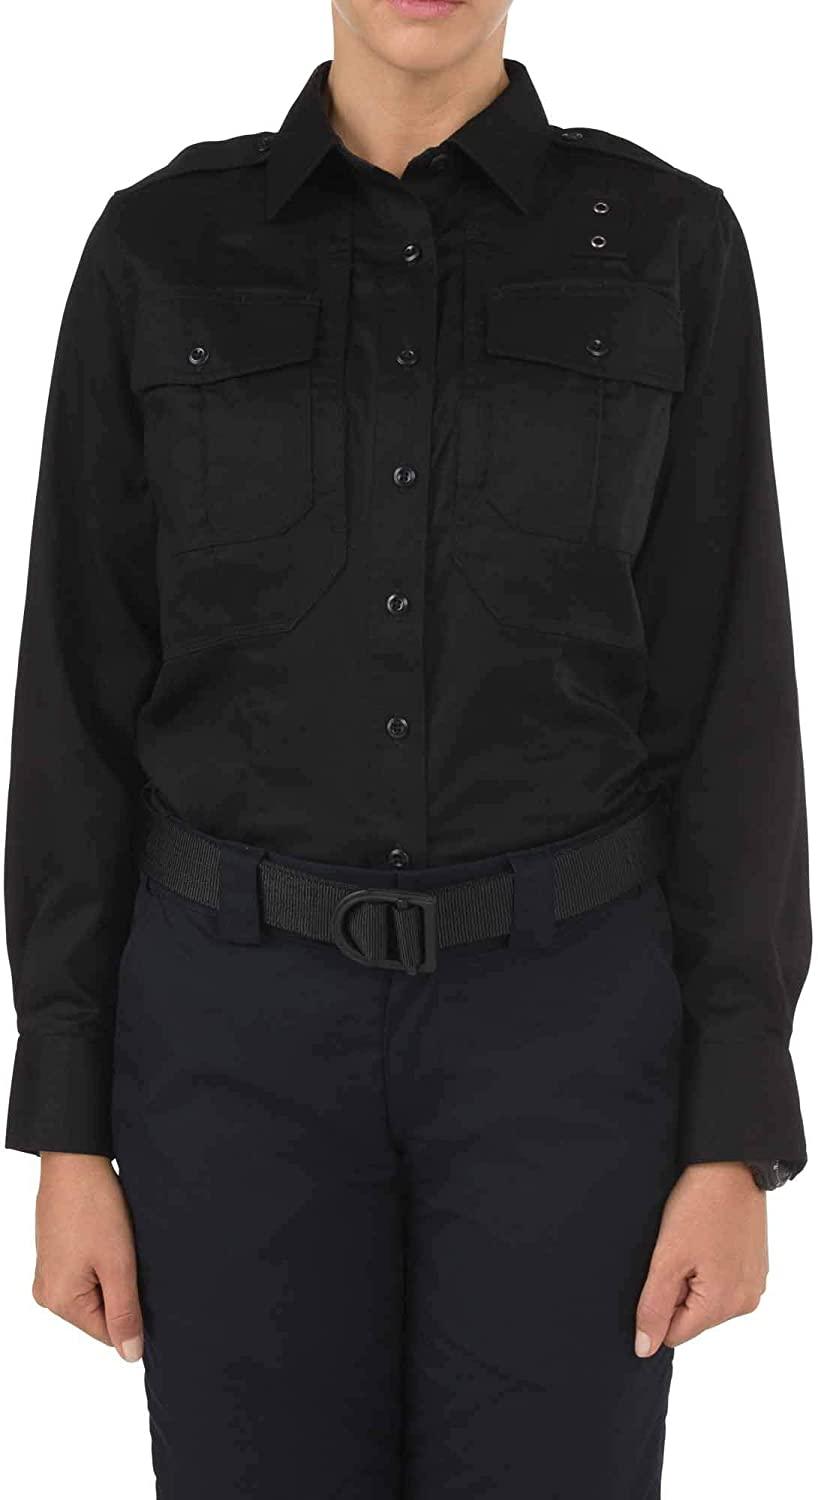 Style 62064 Breathable Poly-Cotton 5.11 Tactical Womens Twill PDU Class A Long Sleeve Shirt